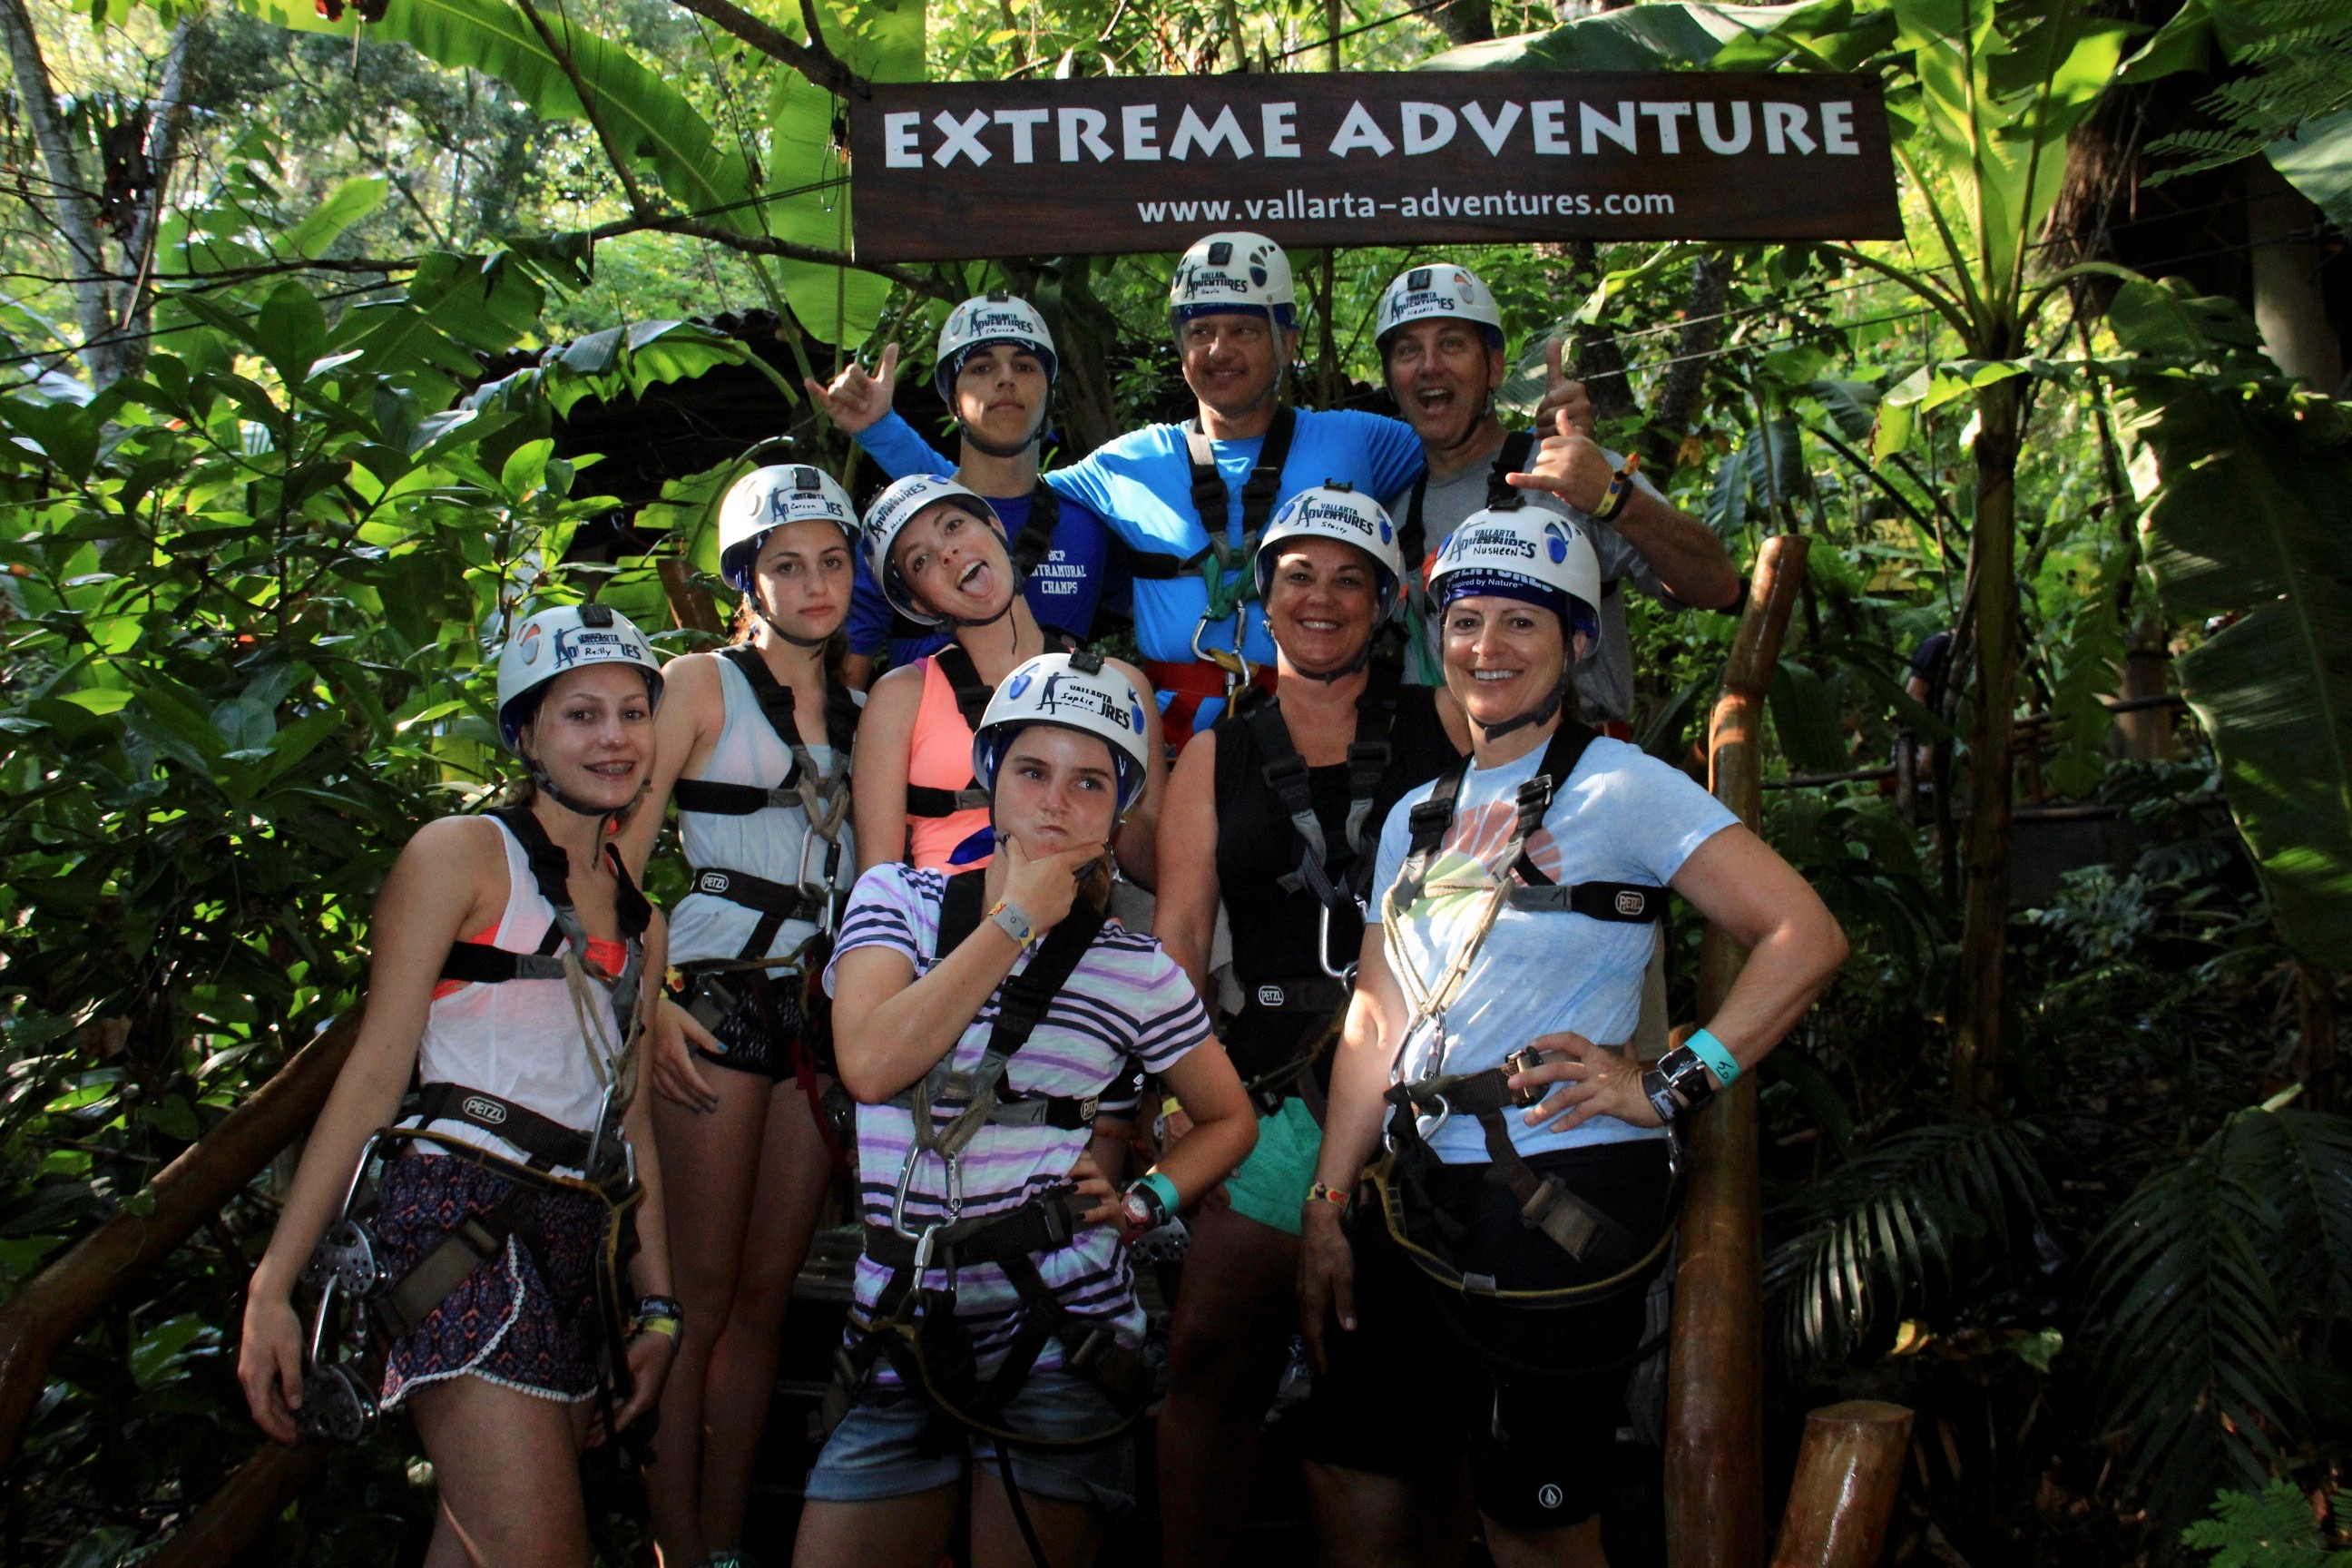 We Loved Our Outings with Vallarta Adventures!